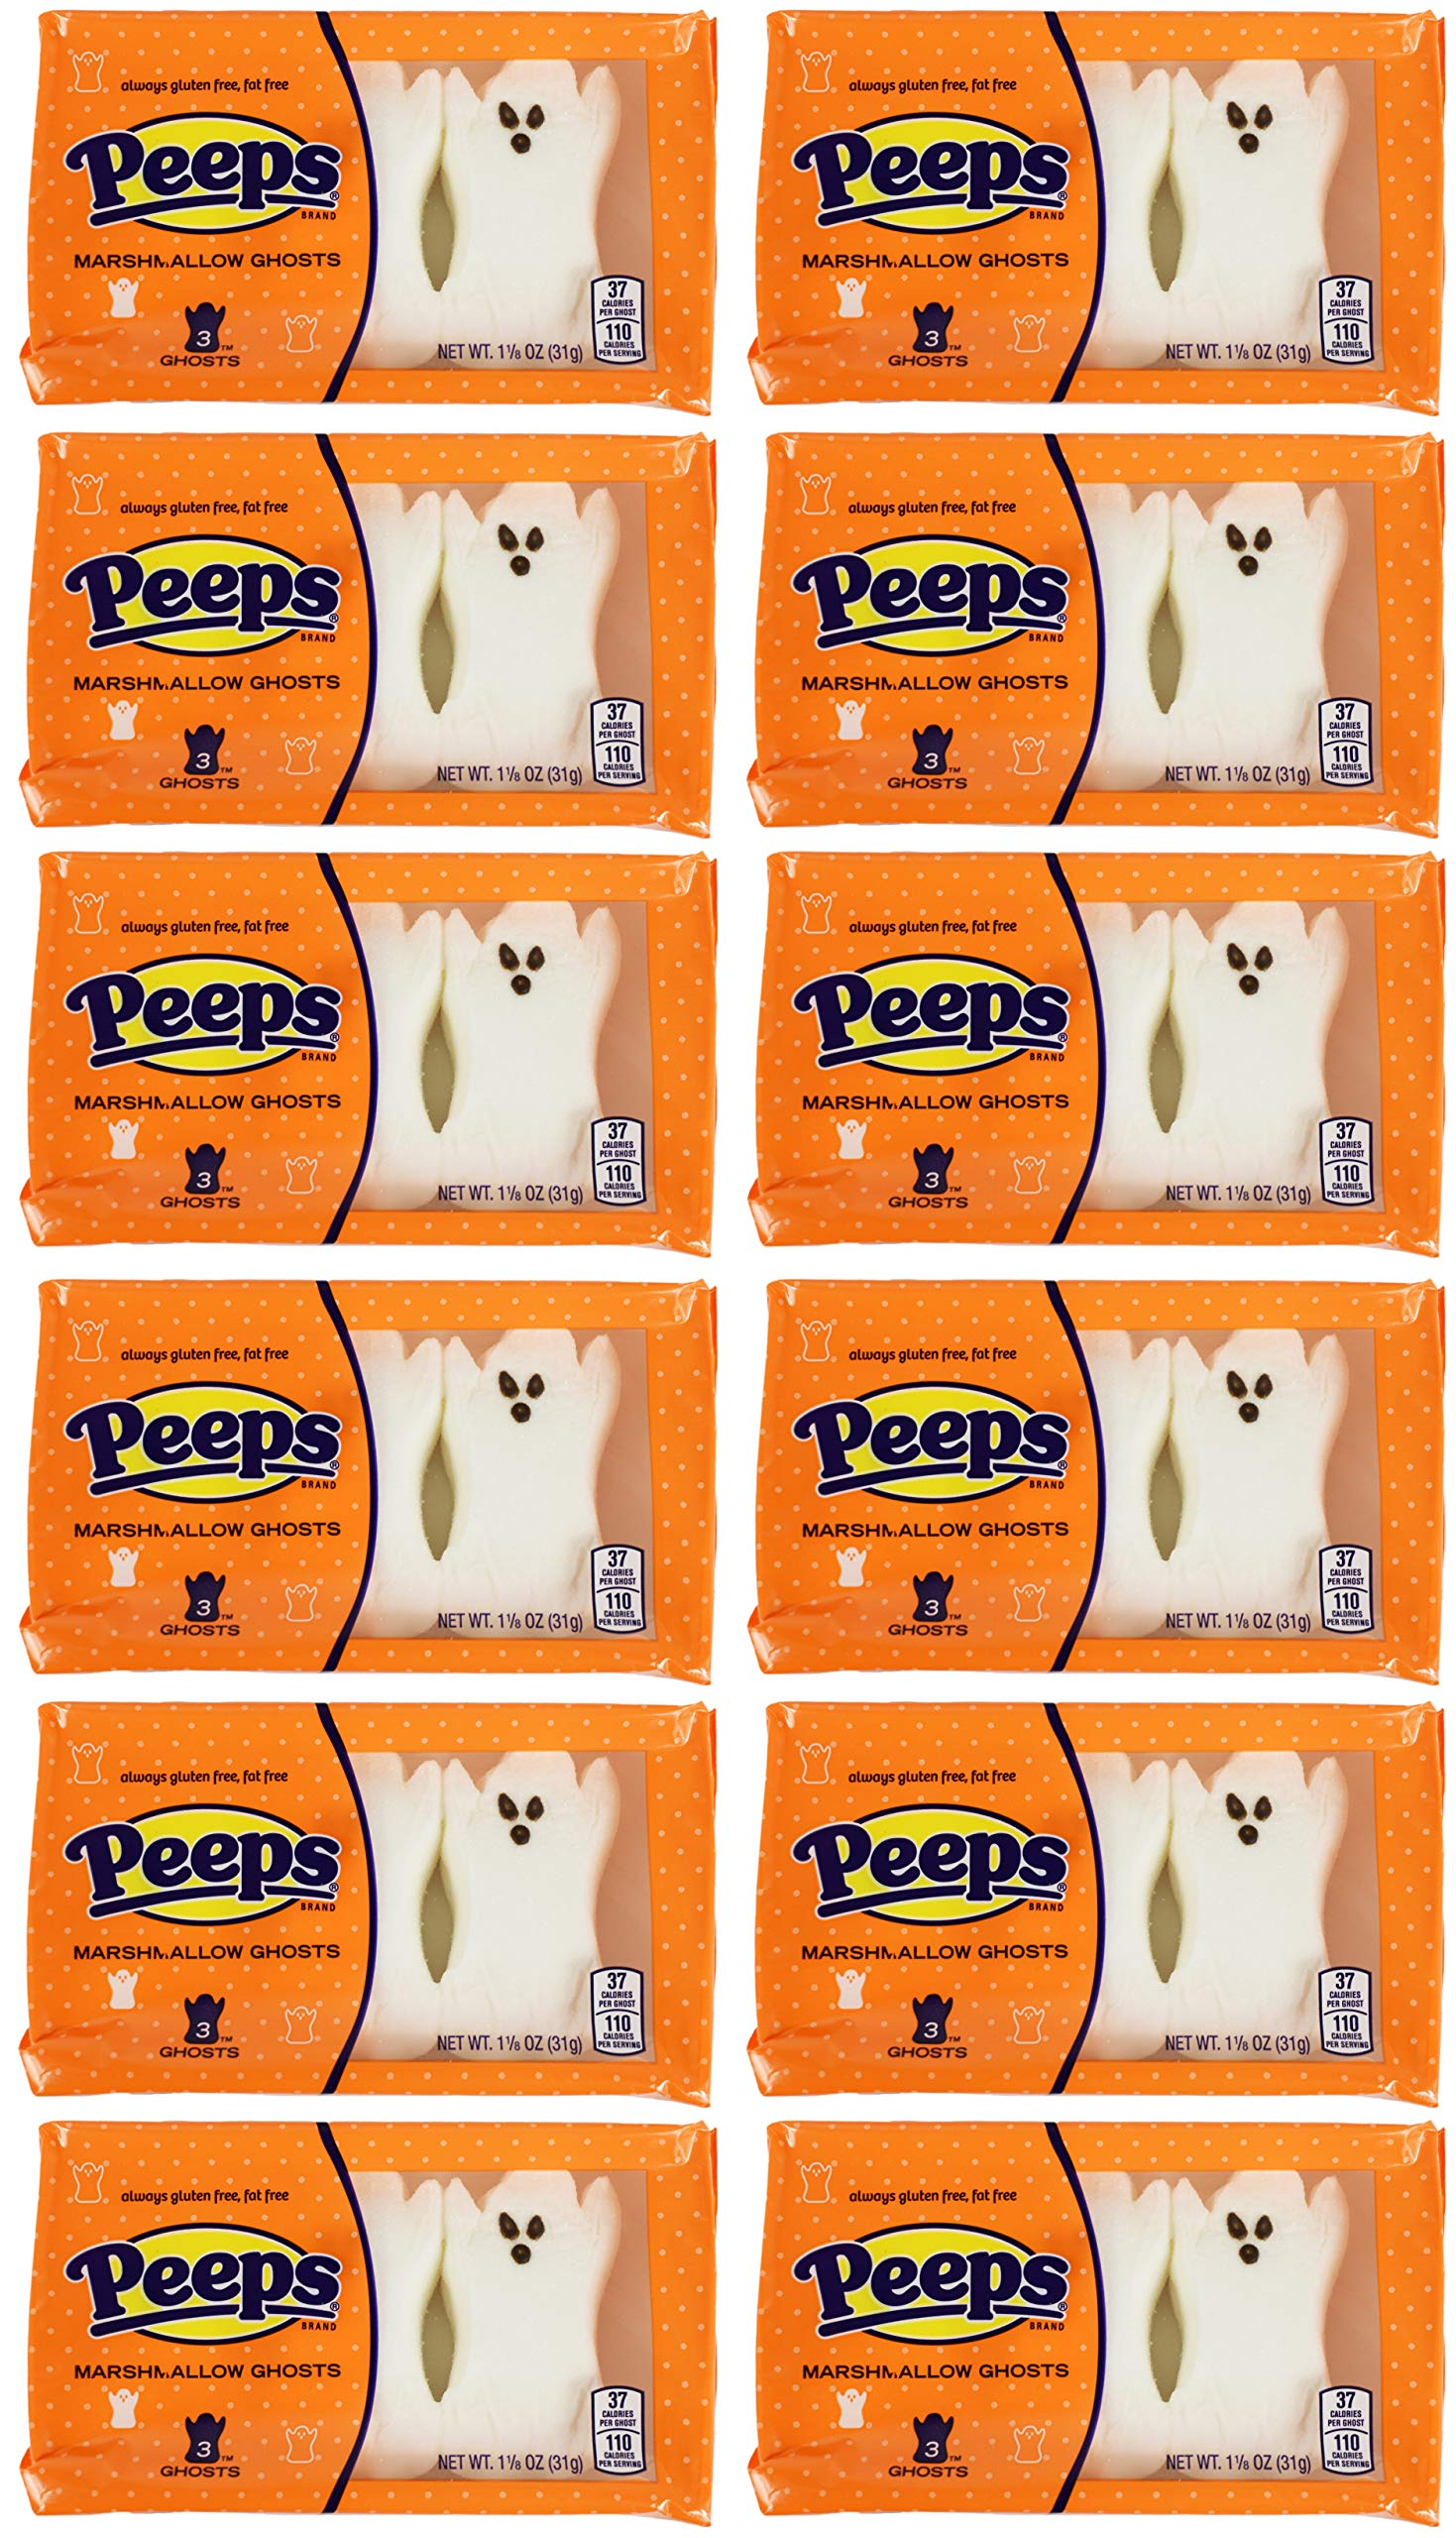 Set of 36 Peeps Marshmallow Ghosts - Great for Halloween Parties and Gifts! by Guckt